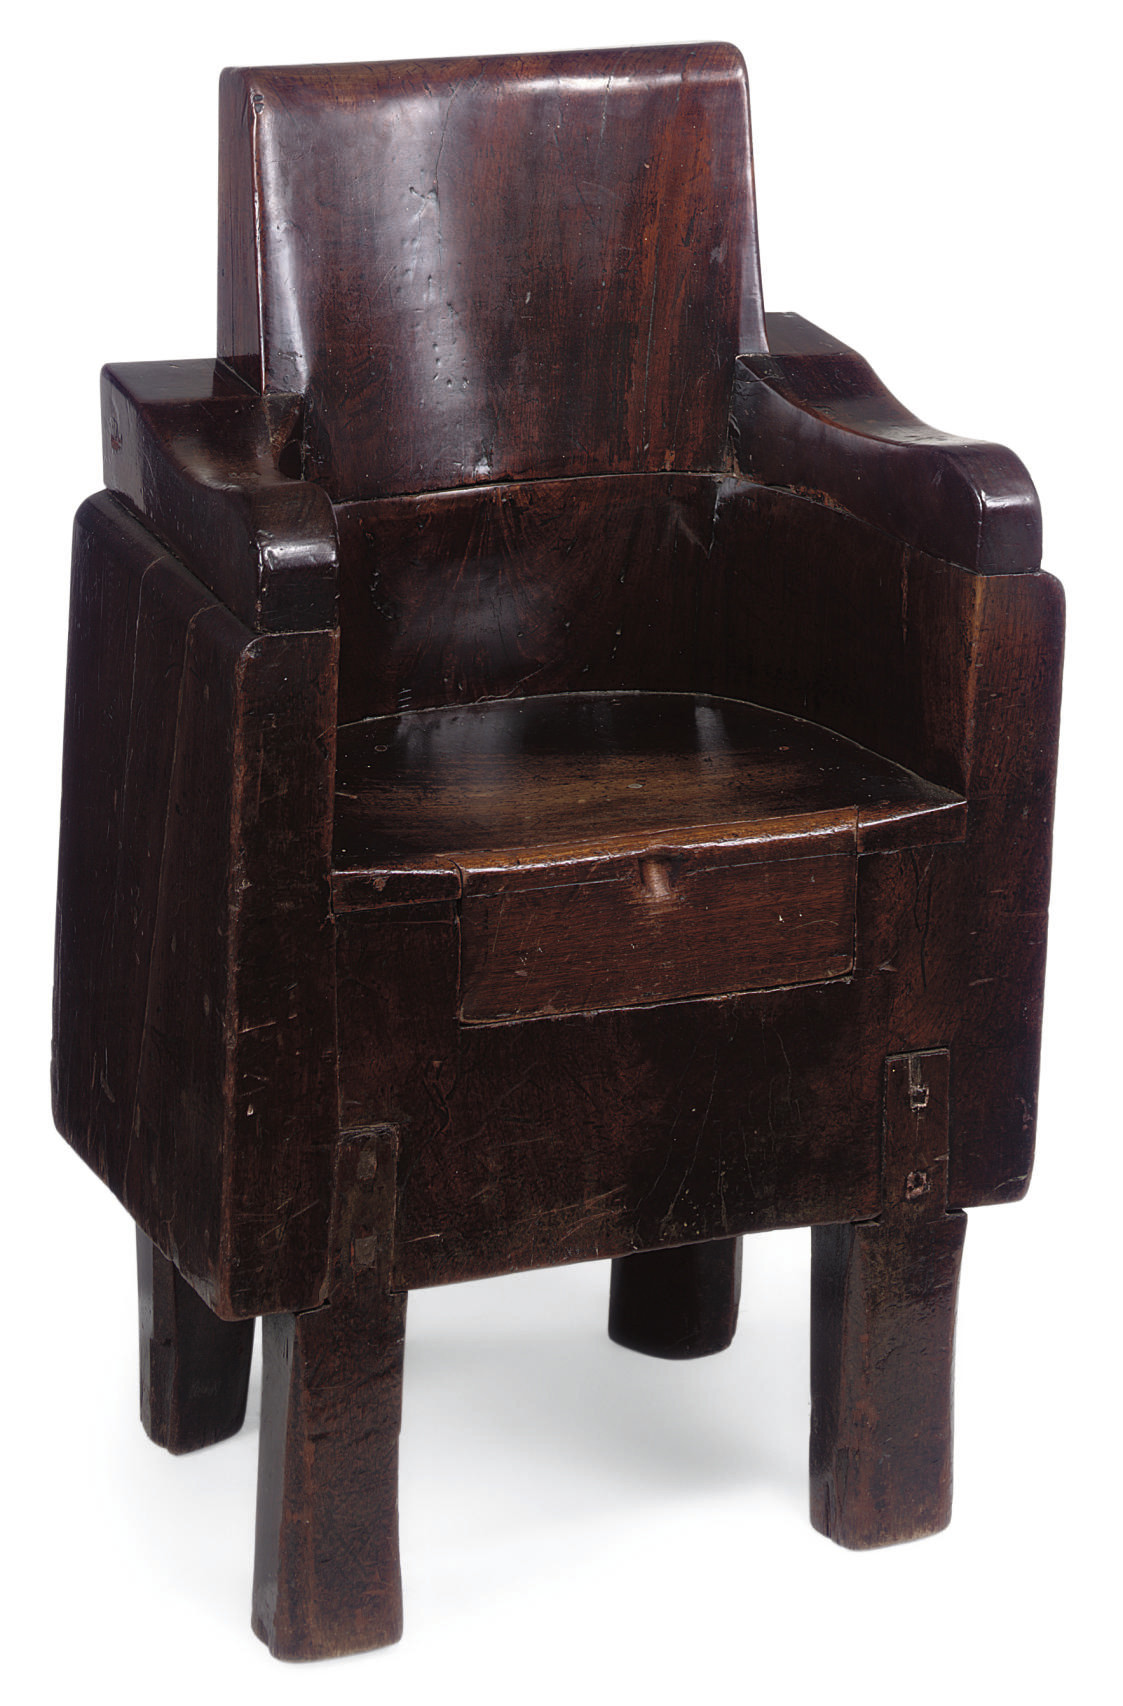 AN UNUSUAL ENGLISH SOLID WALNUT DUG-OUT CHAIR